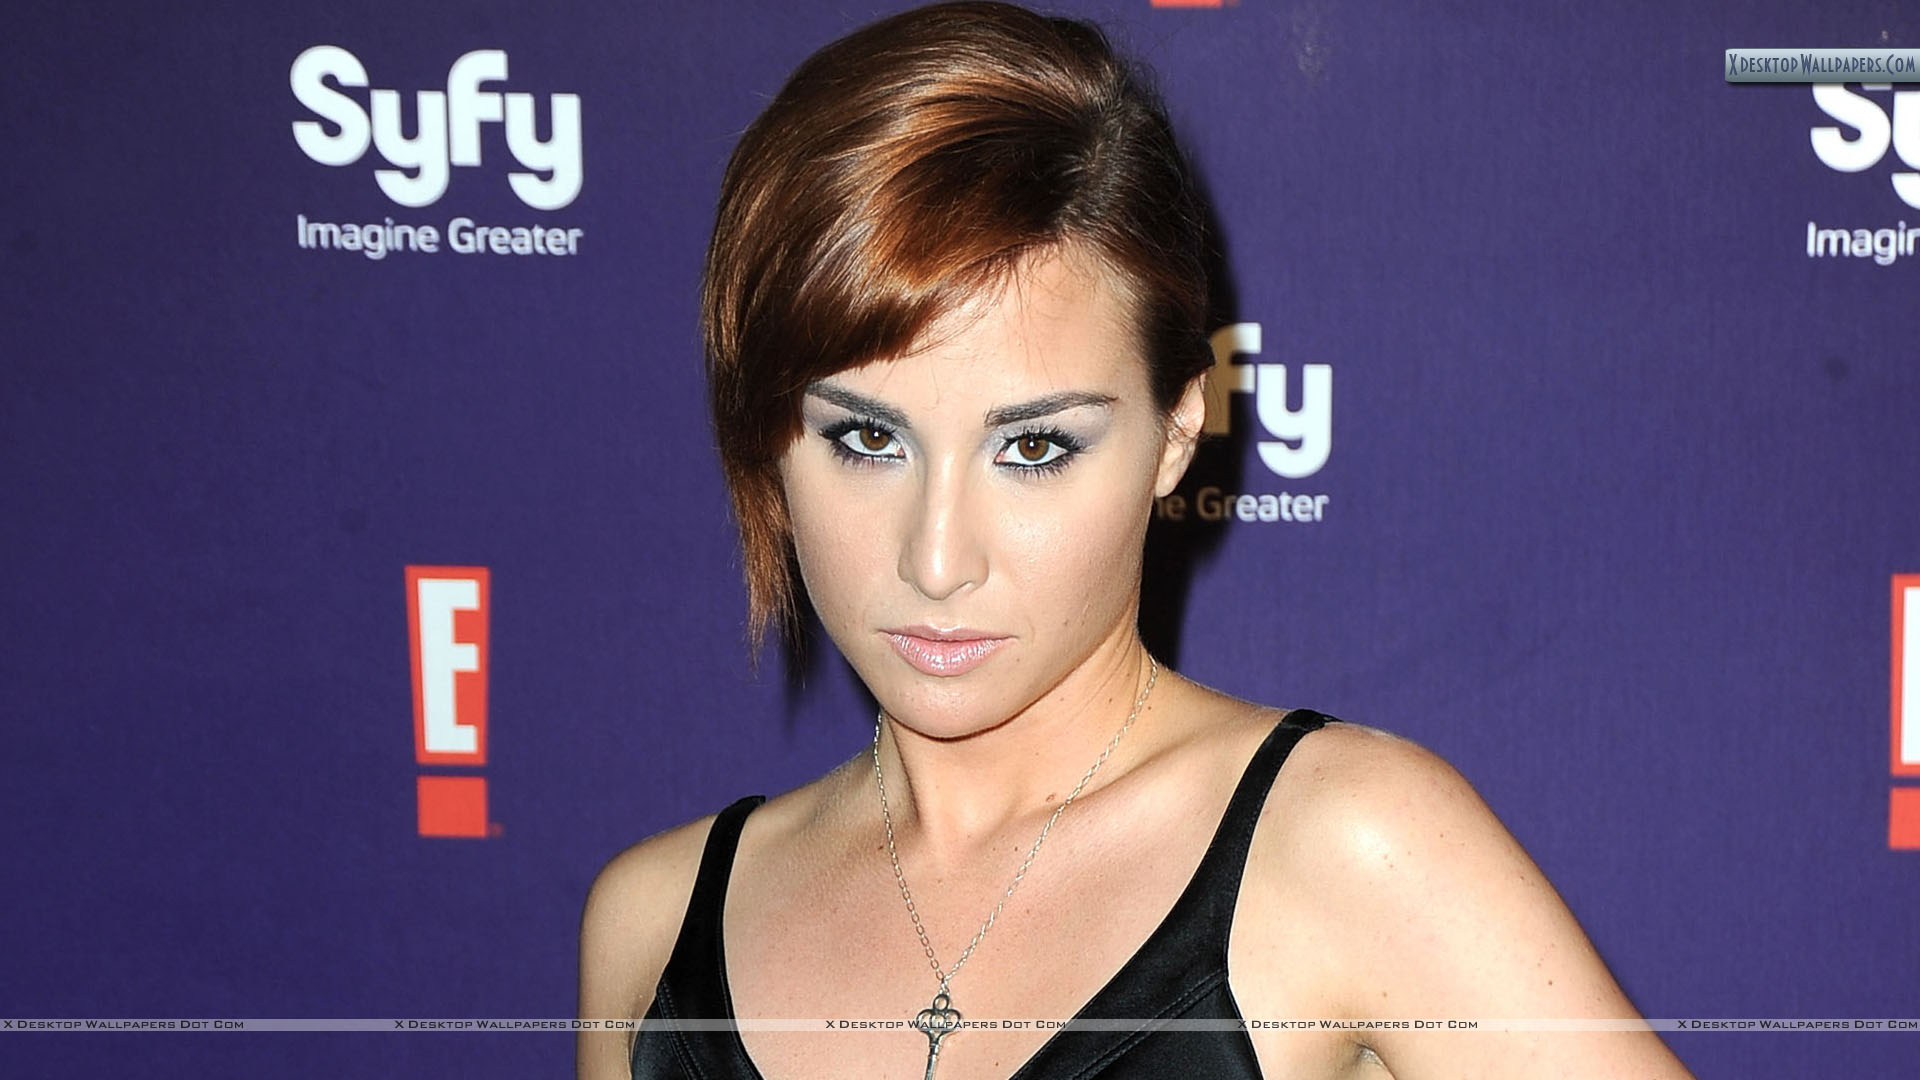 The 26-year old daughter of father (?) and mother(?), 169 cm tall Allison Scagliotti in 2017 photo